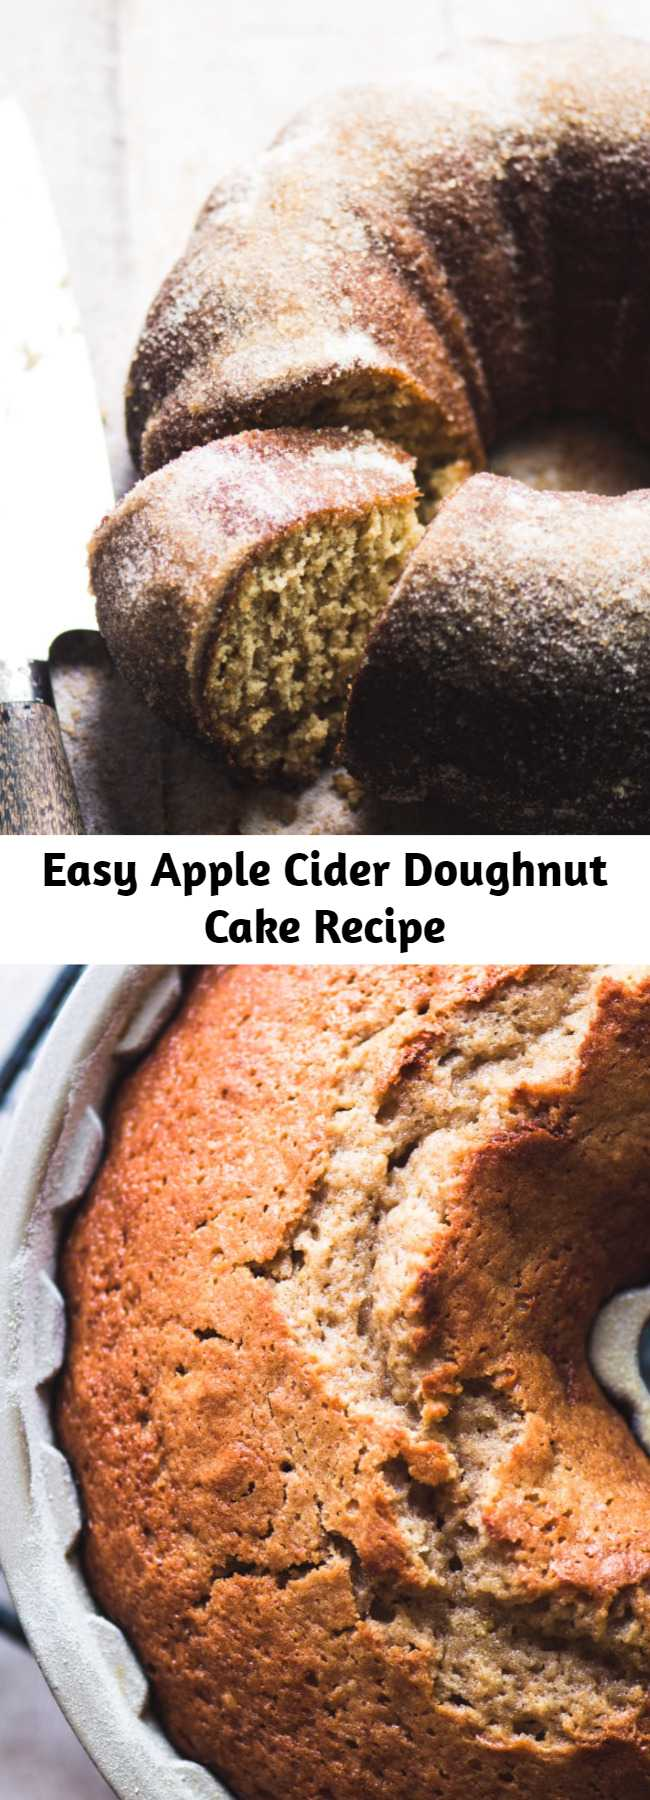 Easy Apple Cider Doughnut Cake Recipe - A warm cinnamon apple cider cake that tastes just like Fall's iconic apple cider doughnuts. It's basically everything you love about the season, baked up in a bundt pan. #easy #recipe #cake #ciderdoughnuts #poundcake #bundtcake #applecake #best #dessert #fallrecipe #fall #apples #bundt #coffeecake #brunch